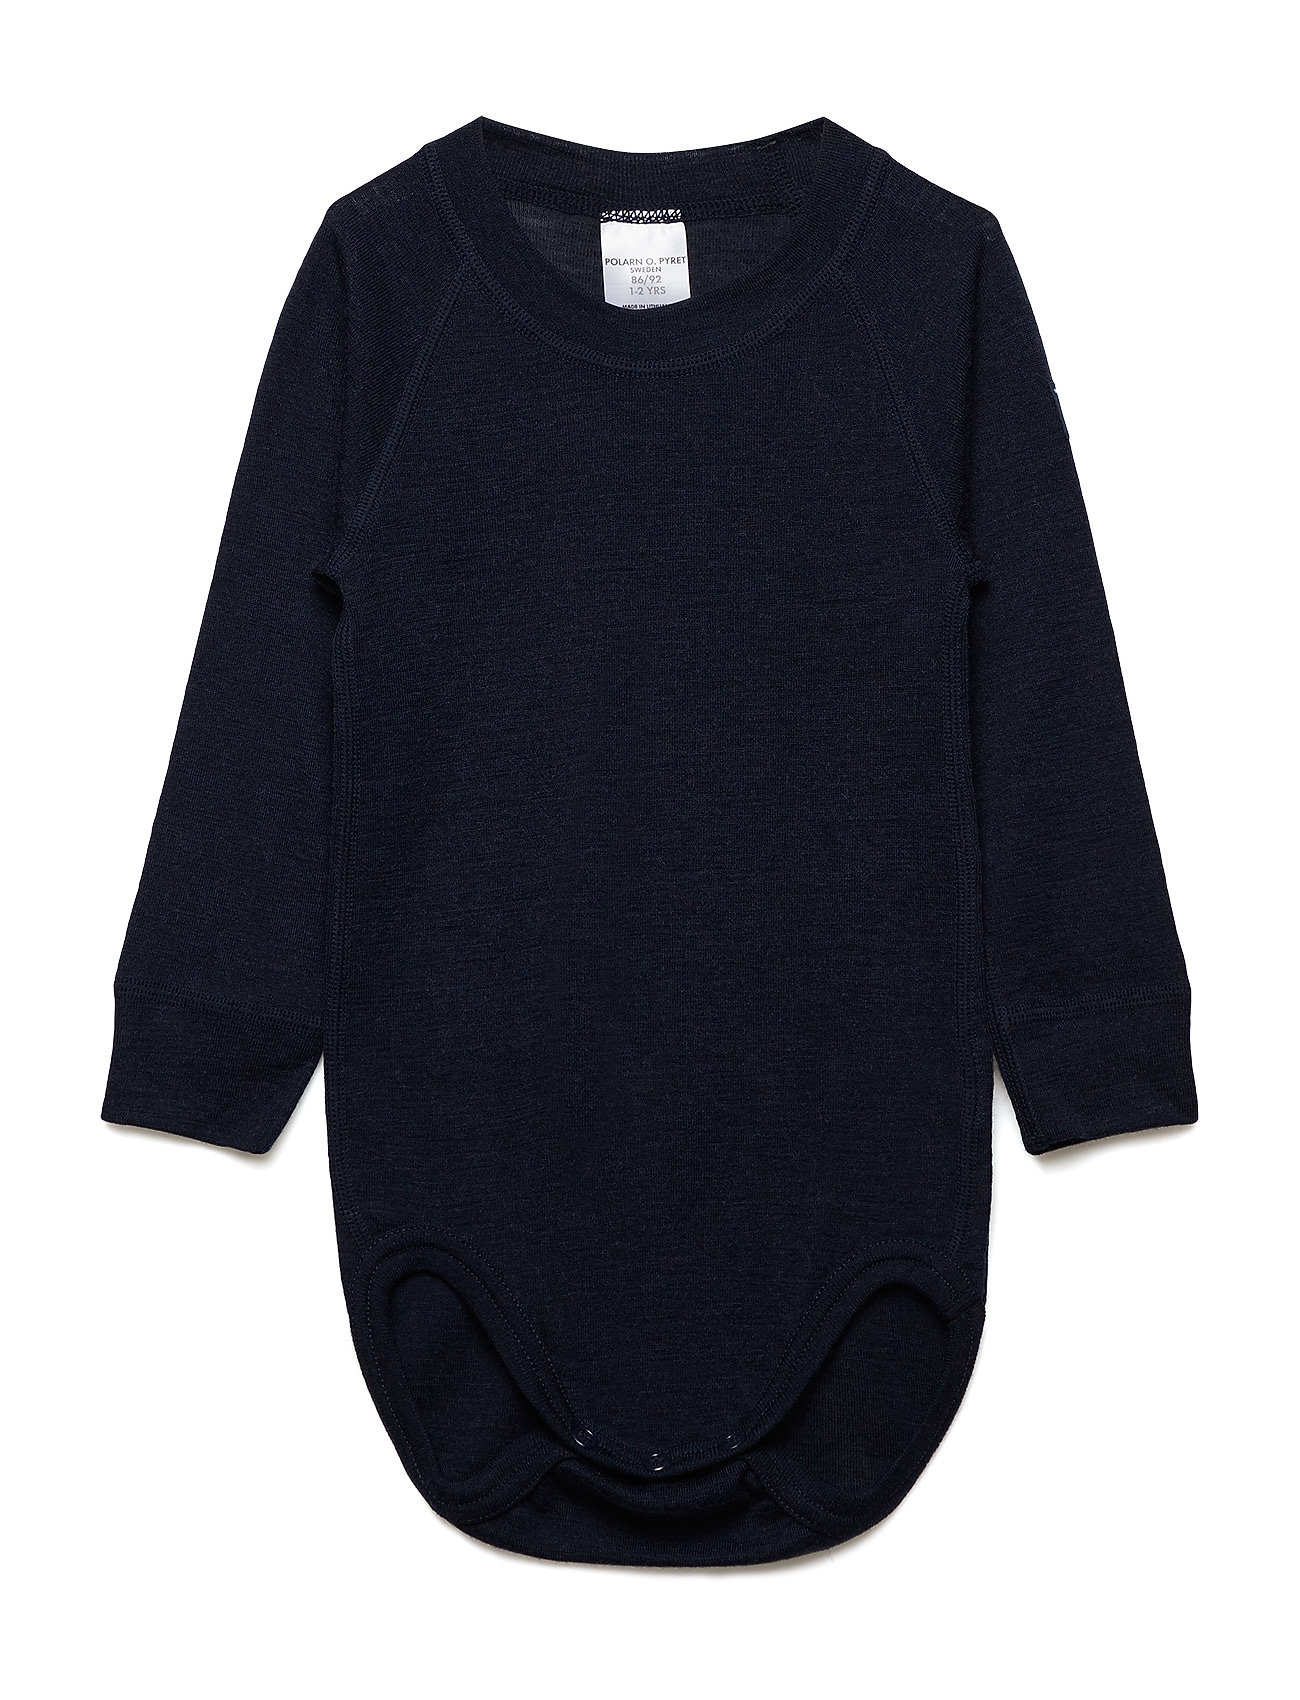 Polarn O. Pyret Body Wool Solid Baby